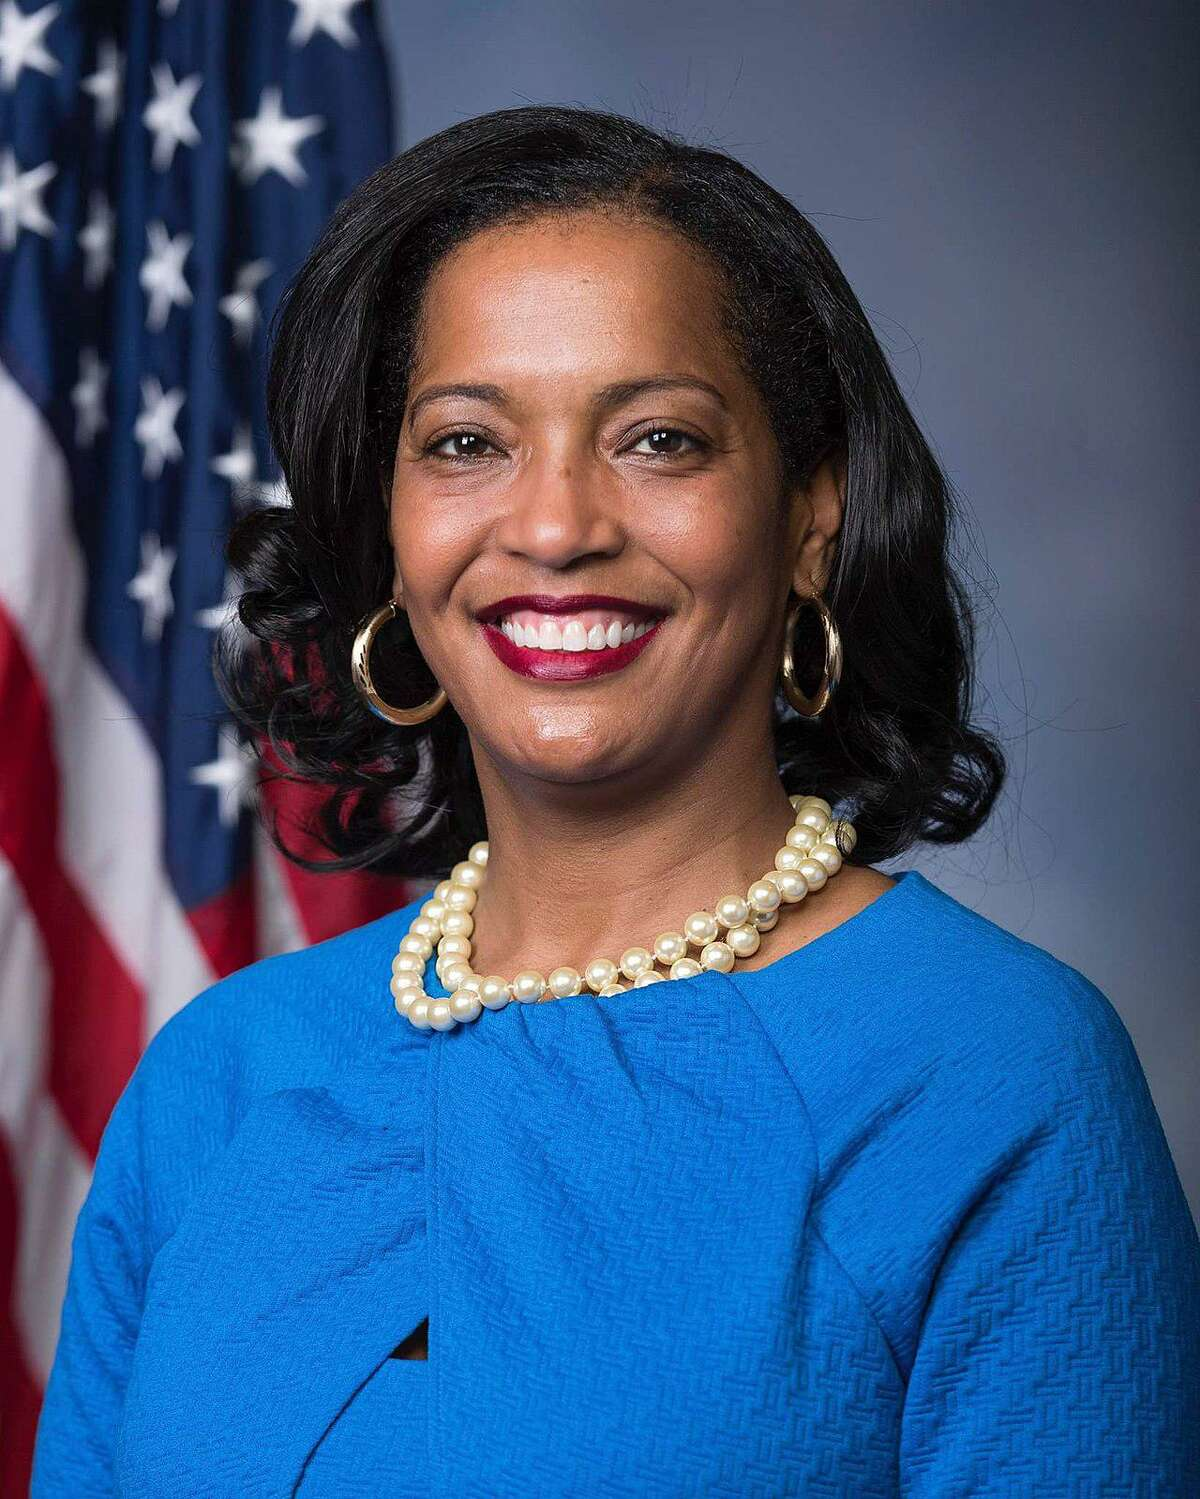 U.S. Rep. Jahana Hayes of Connecticut's 5th Congressional District.